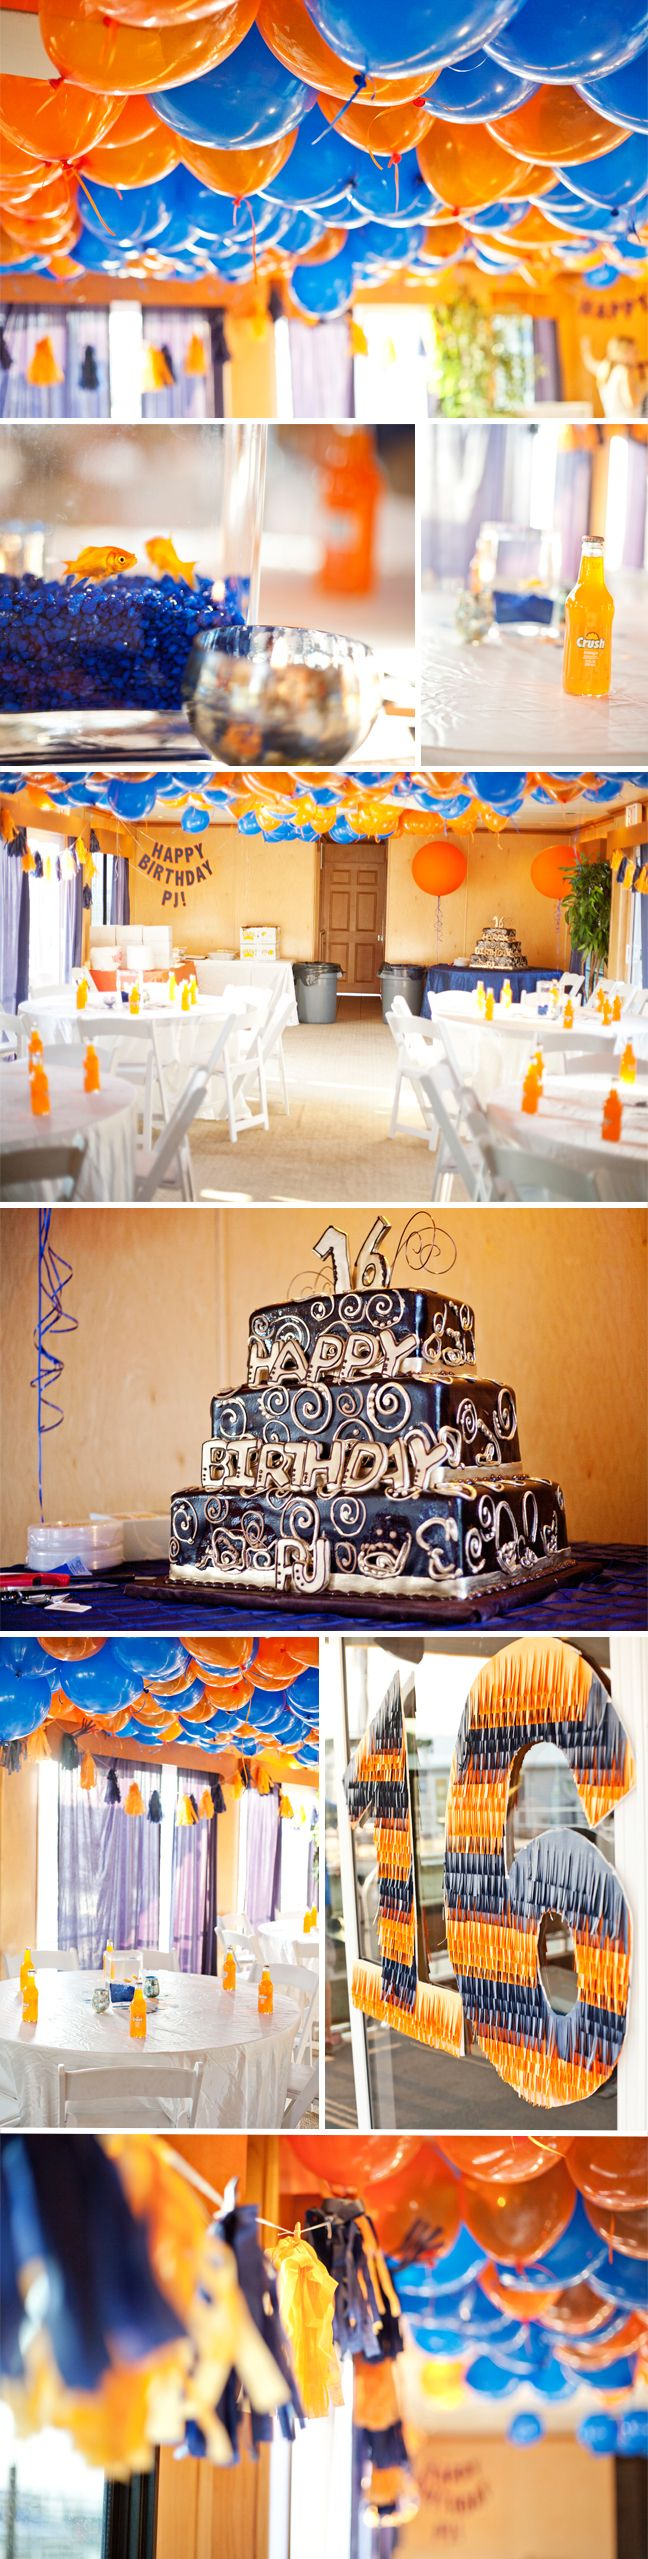 17 images about driver 39 s license 16th party on pinterest for 16th party decoration ideas